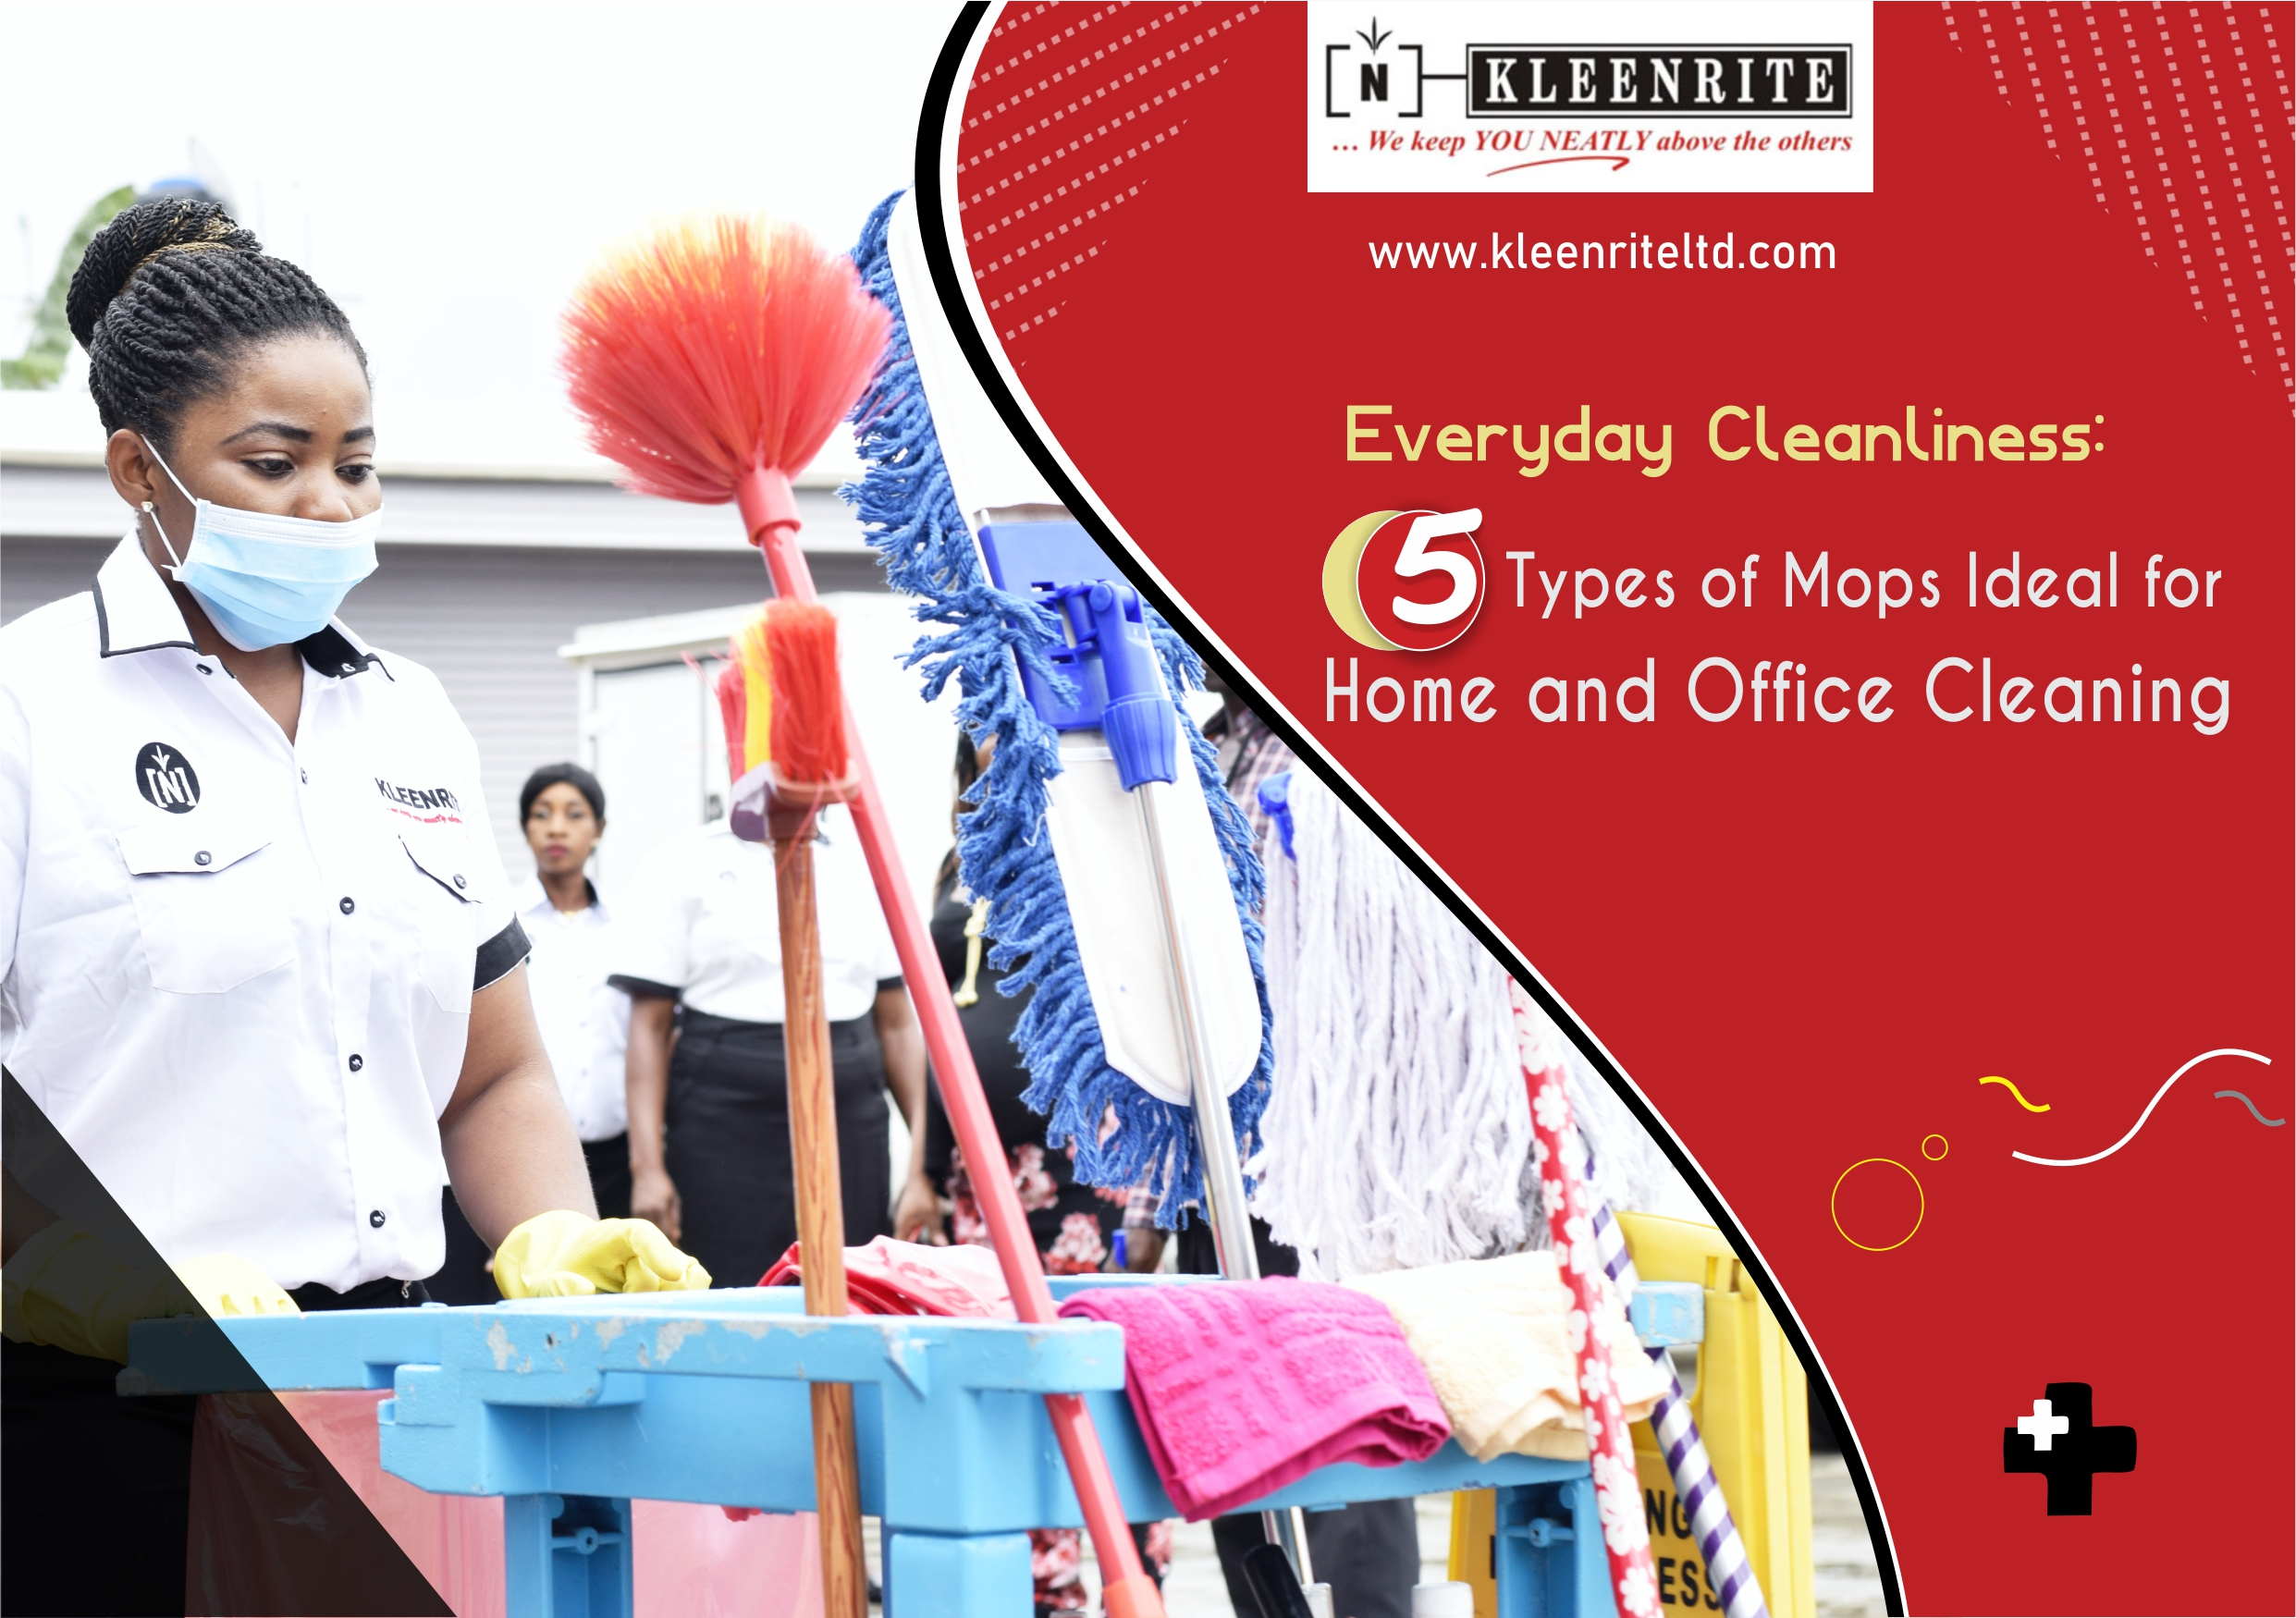 5 Types of Mops Ideal for Home and Office Cleaning